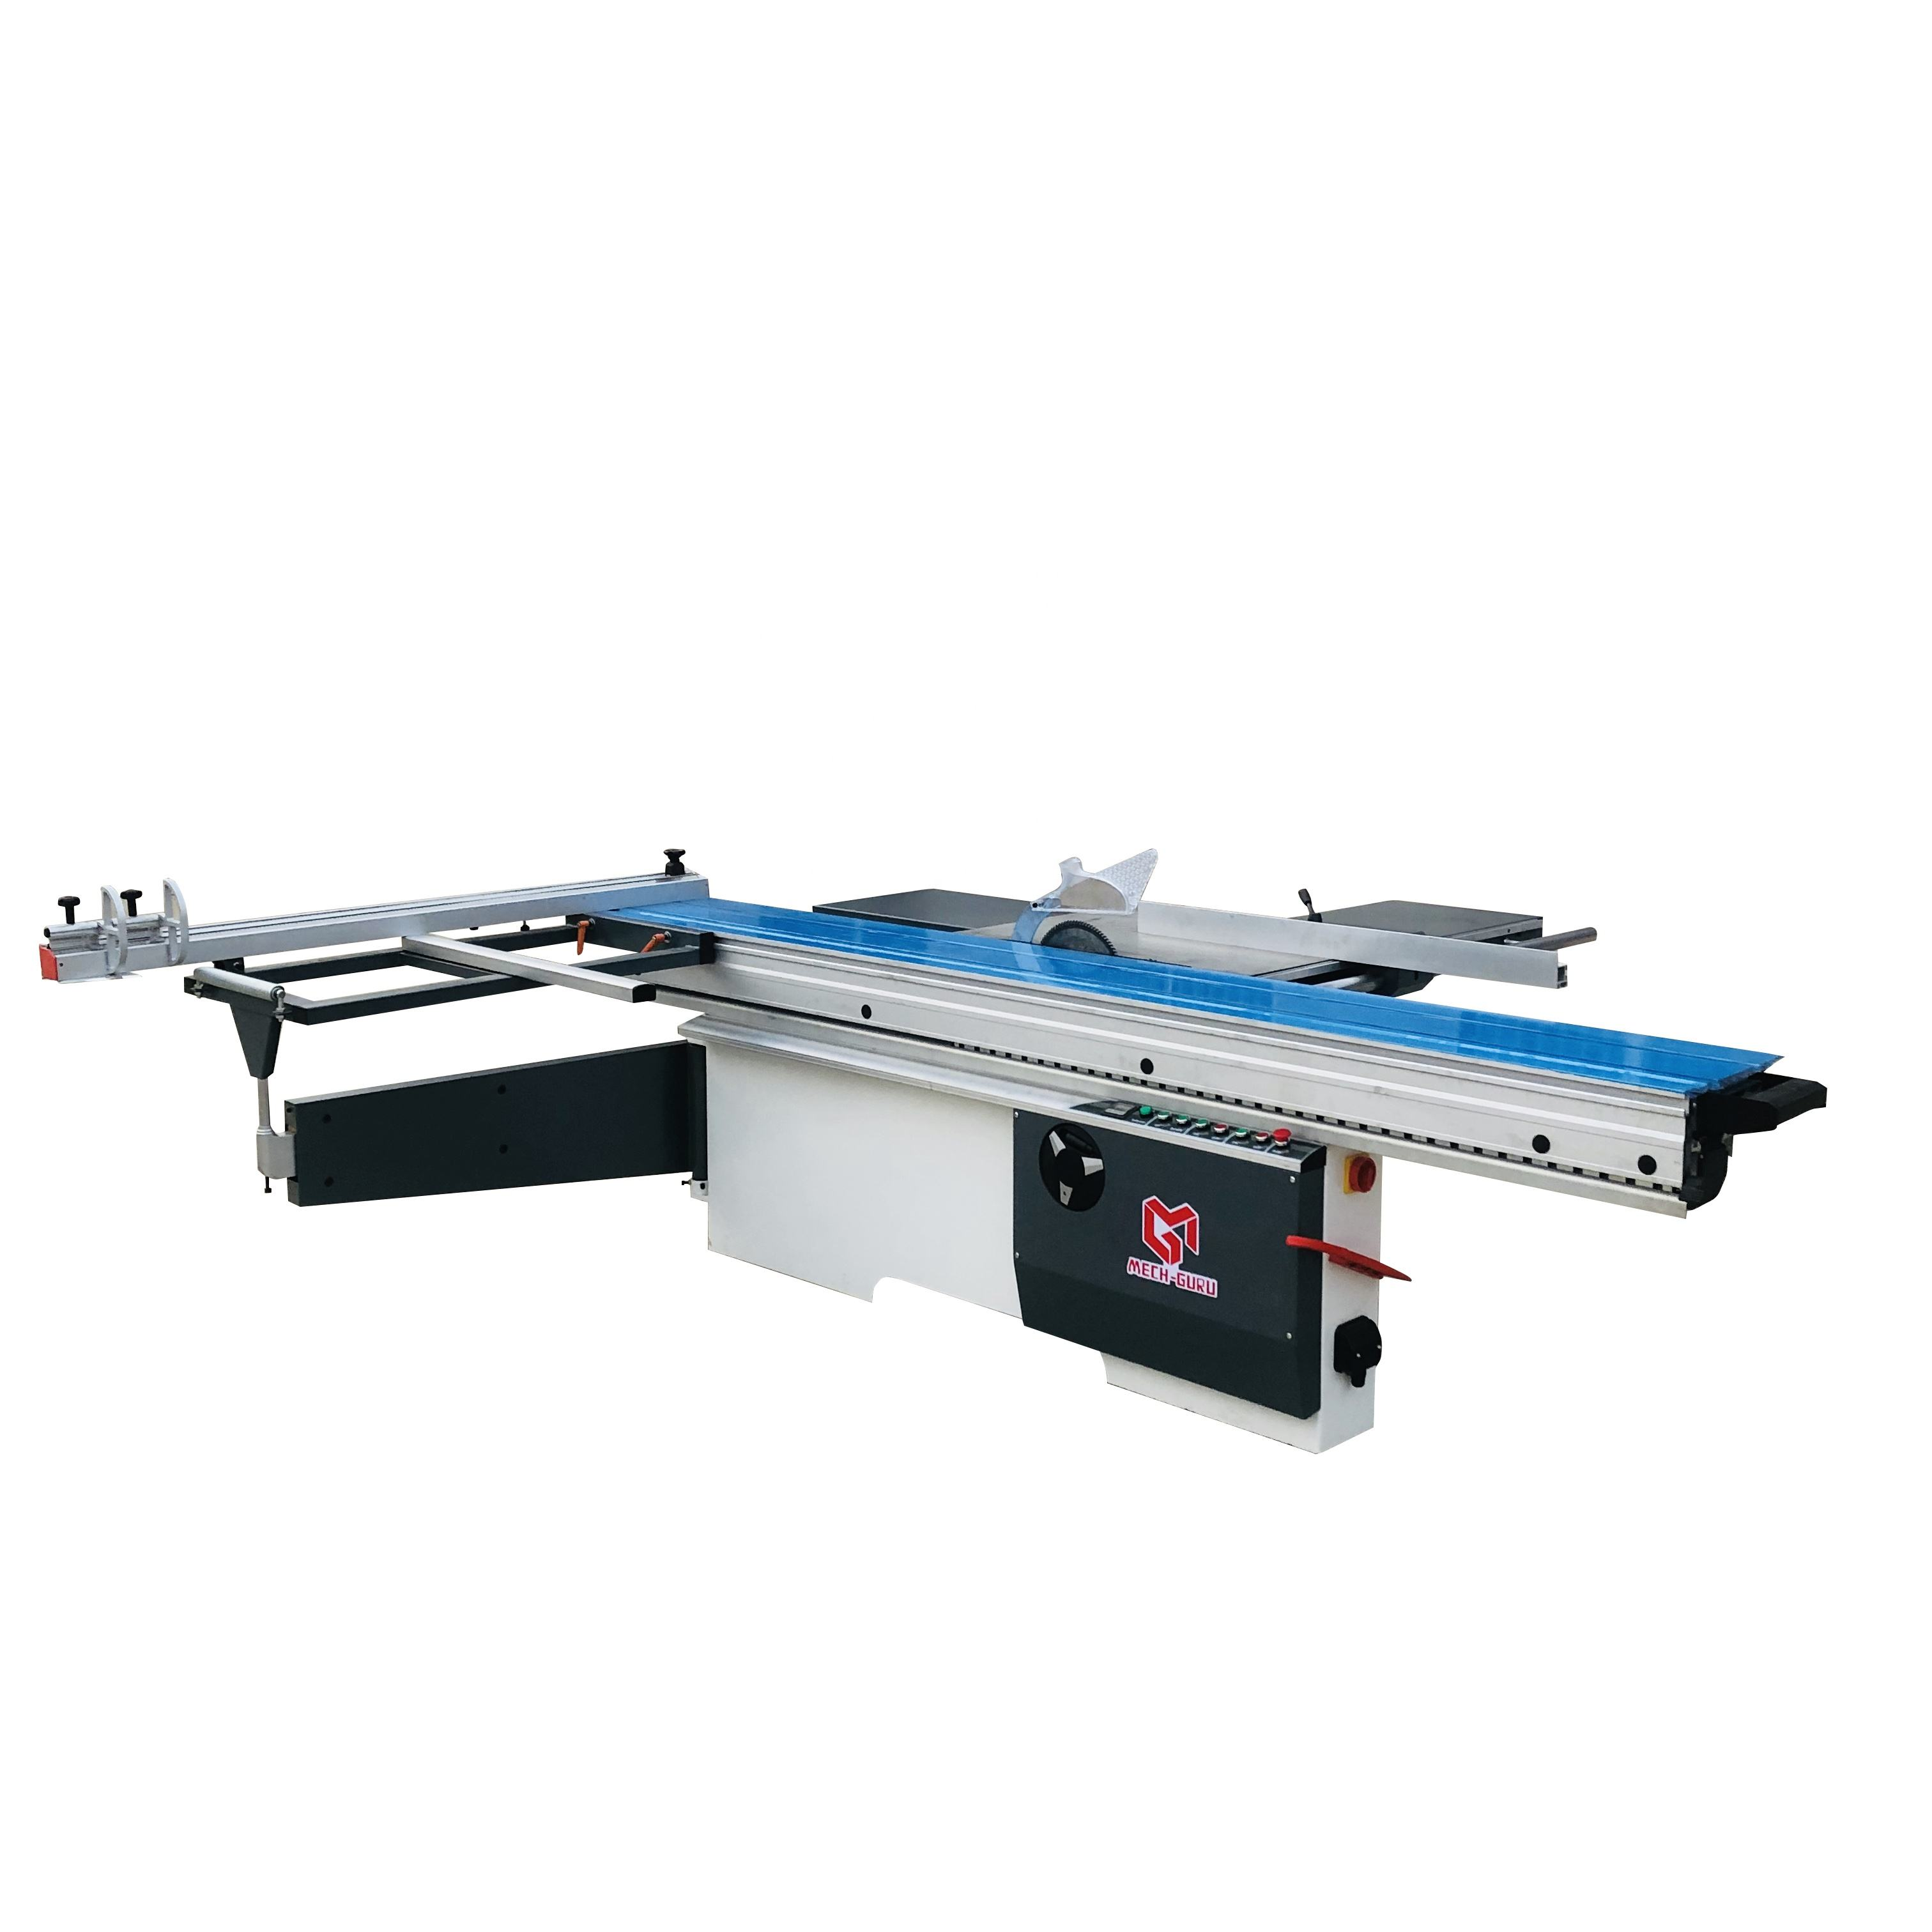 Precision Wood Cutting saw diamond saw machine mobile sawmill